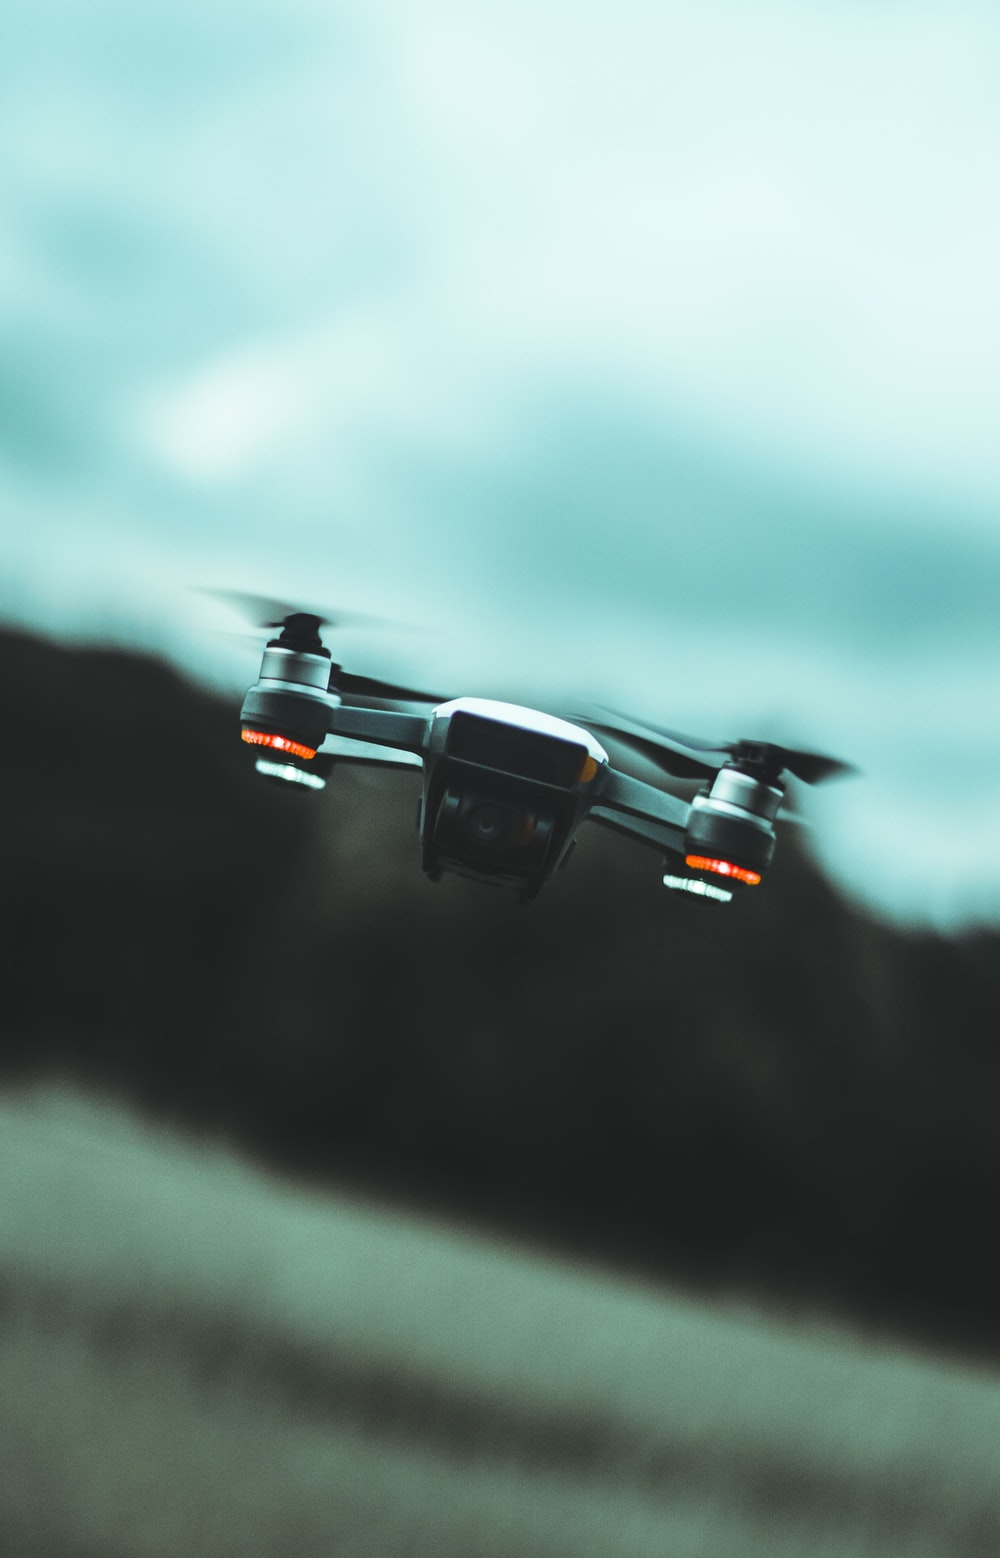 black quadcopter drone flying on the air